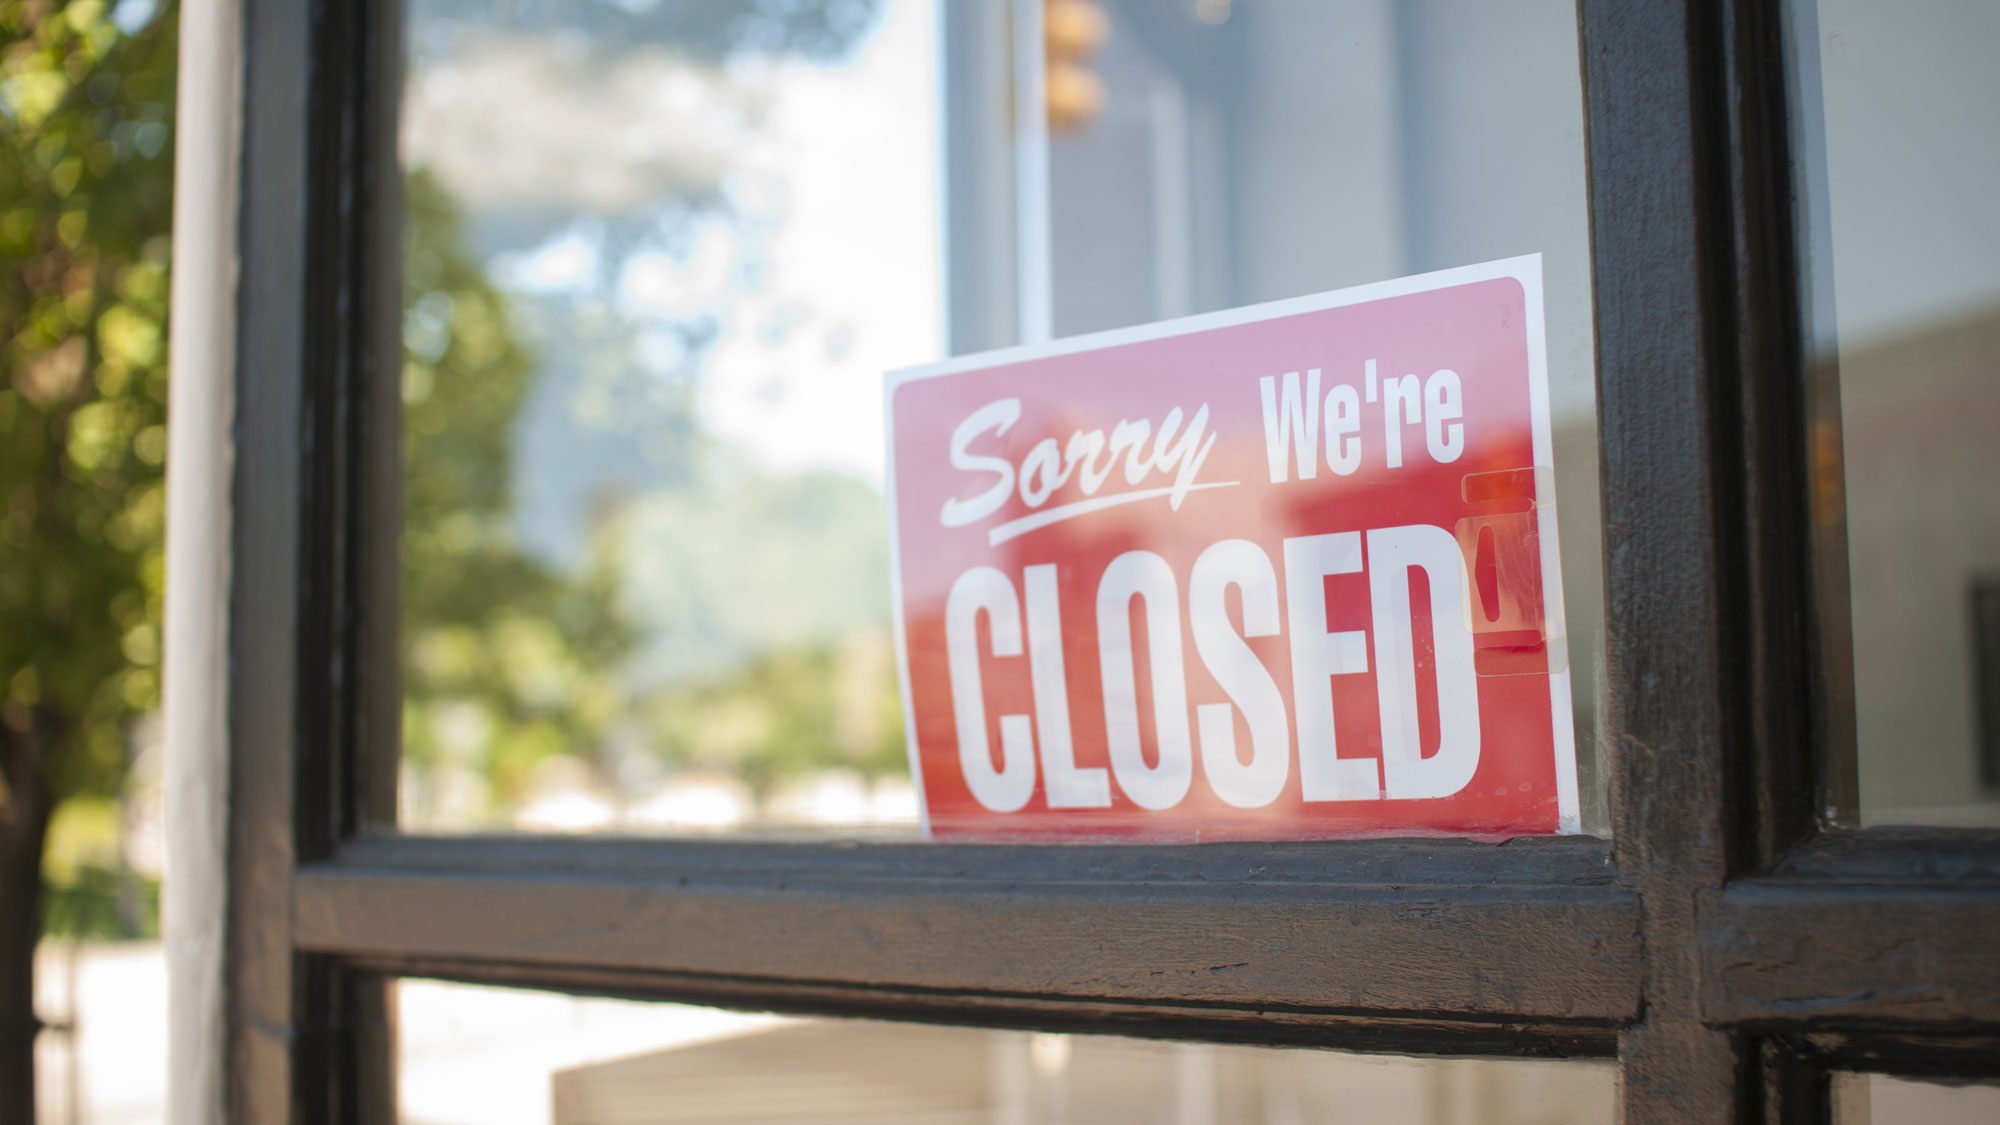 A closed on a storefront. GETTY IMAGES/huePhotography